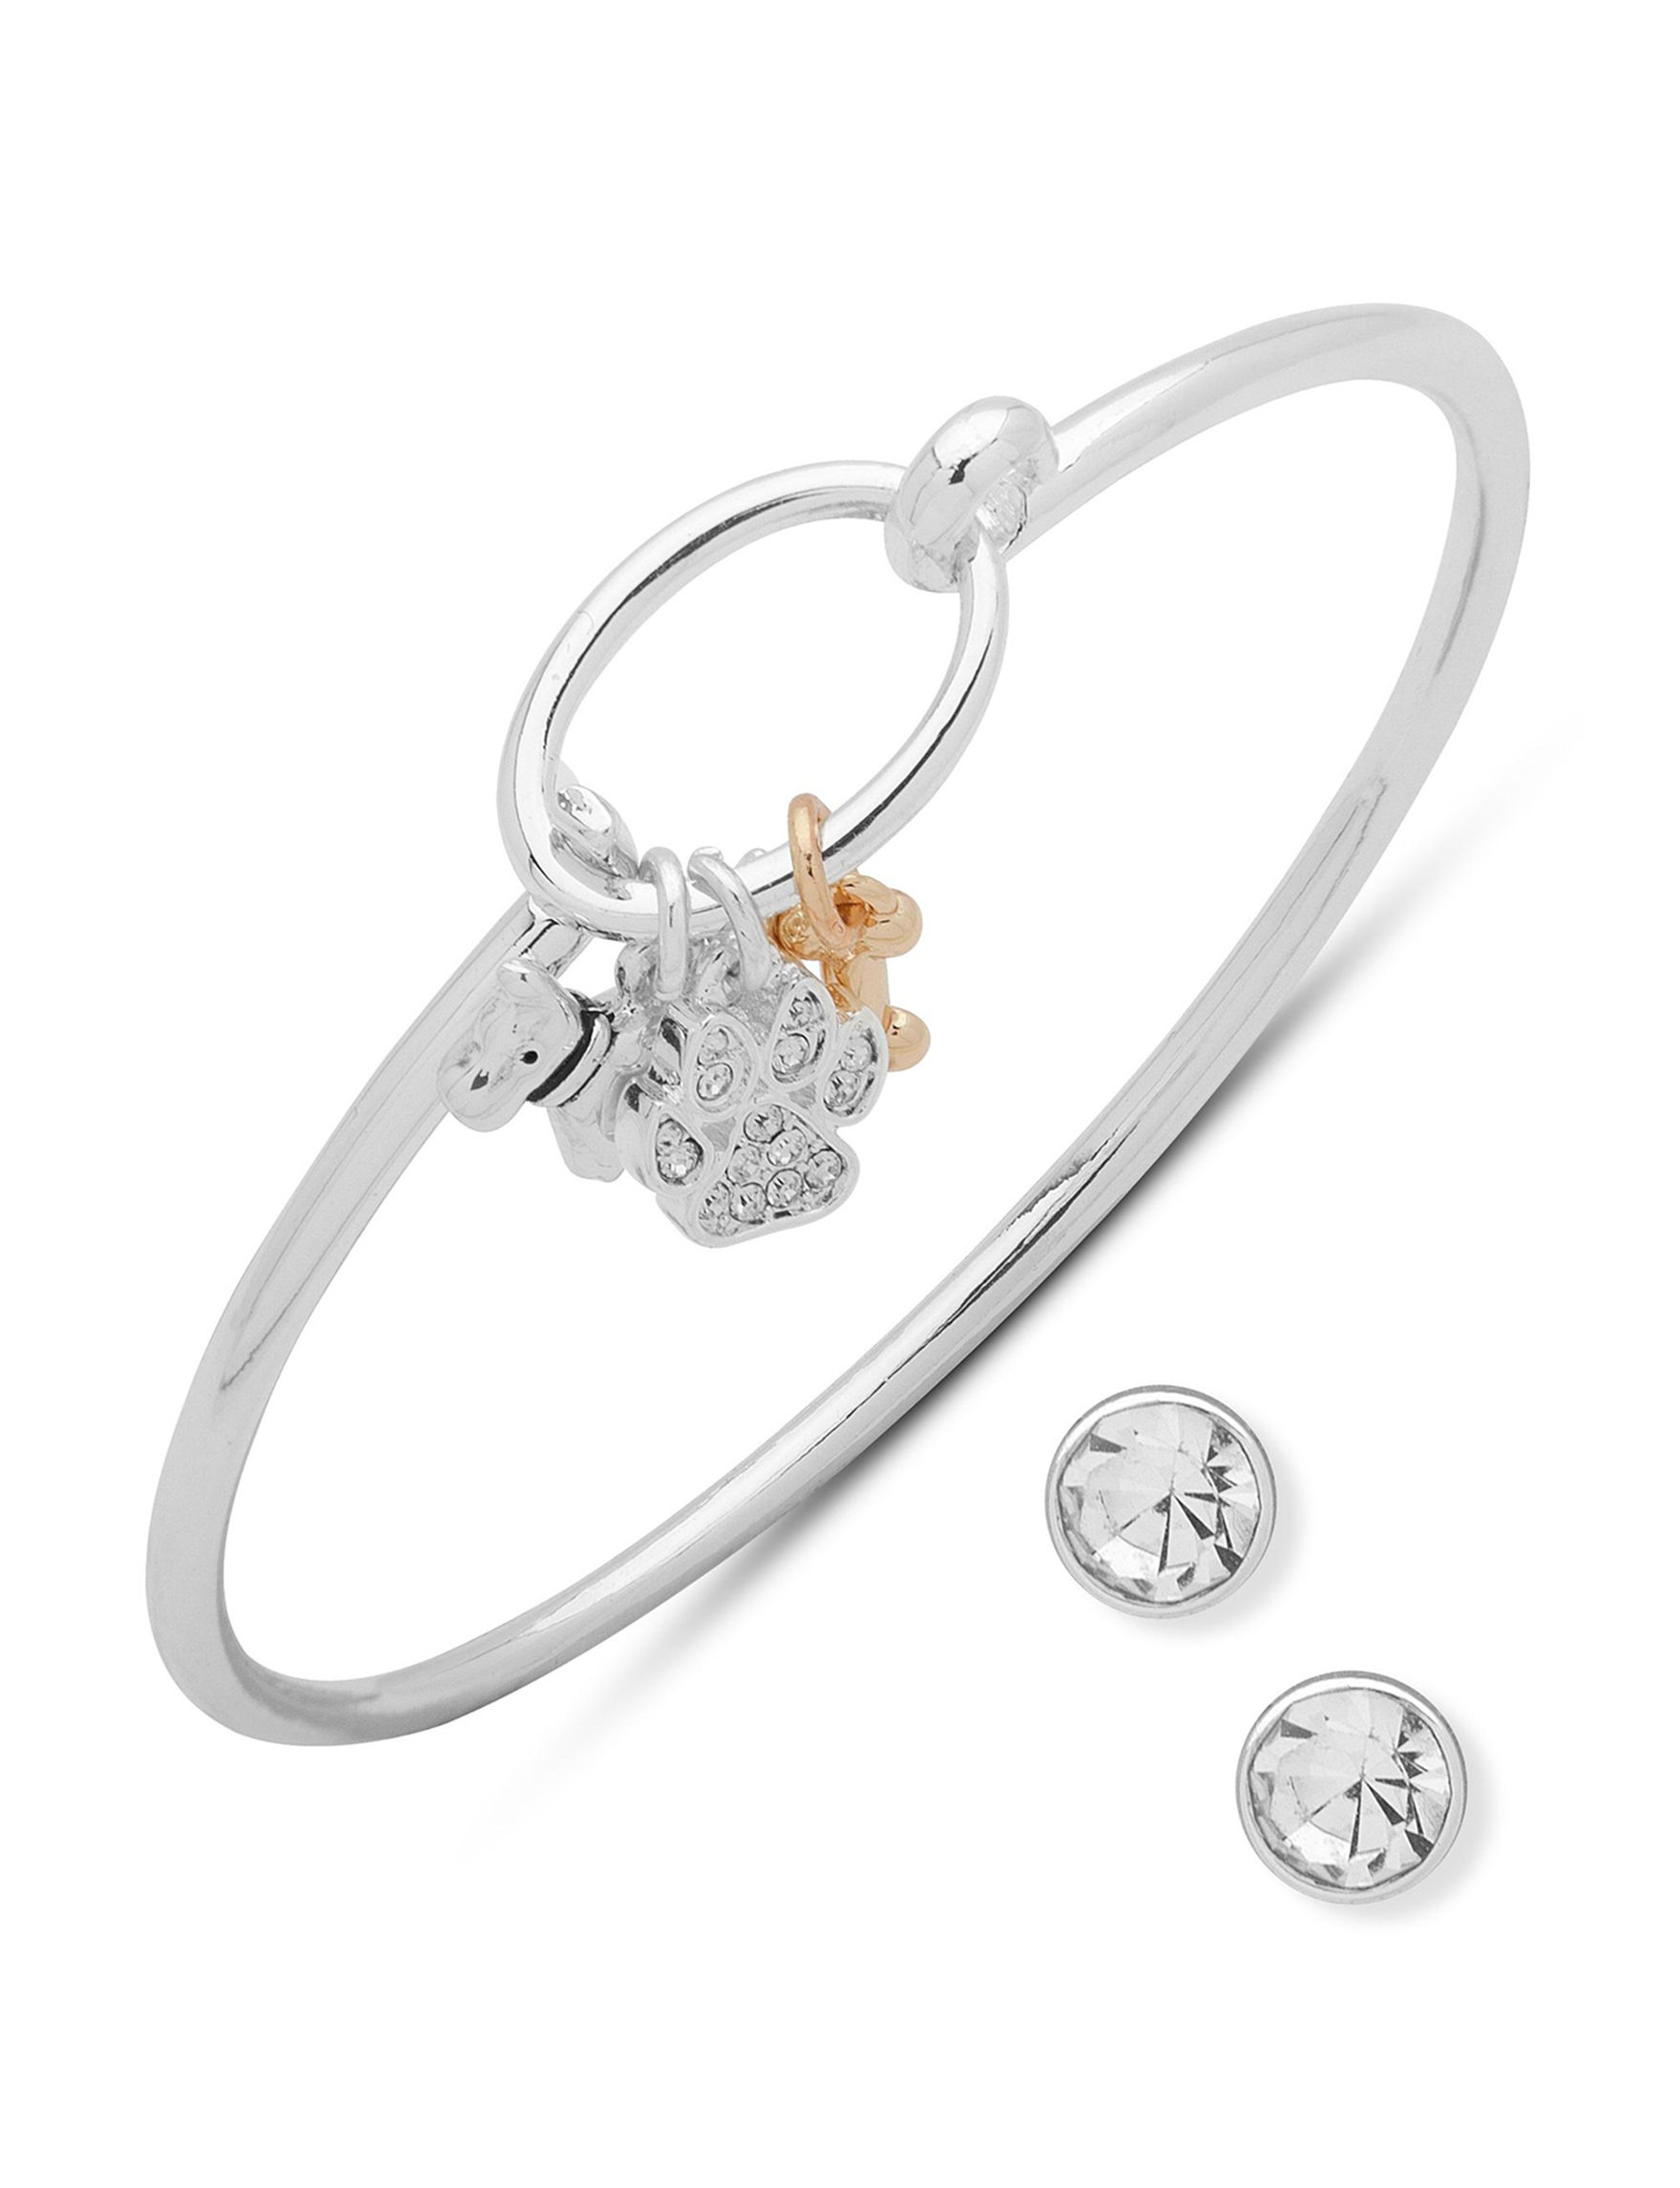 Pet Friends Silver / Crystal Bracelets Earrings Fashion Jewelry